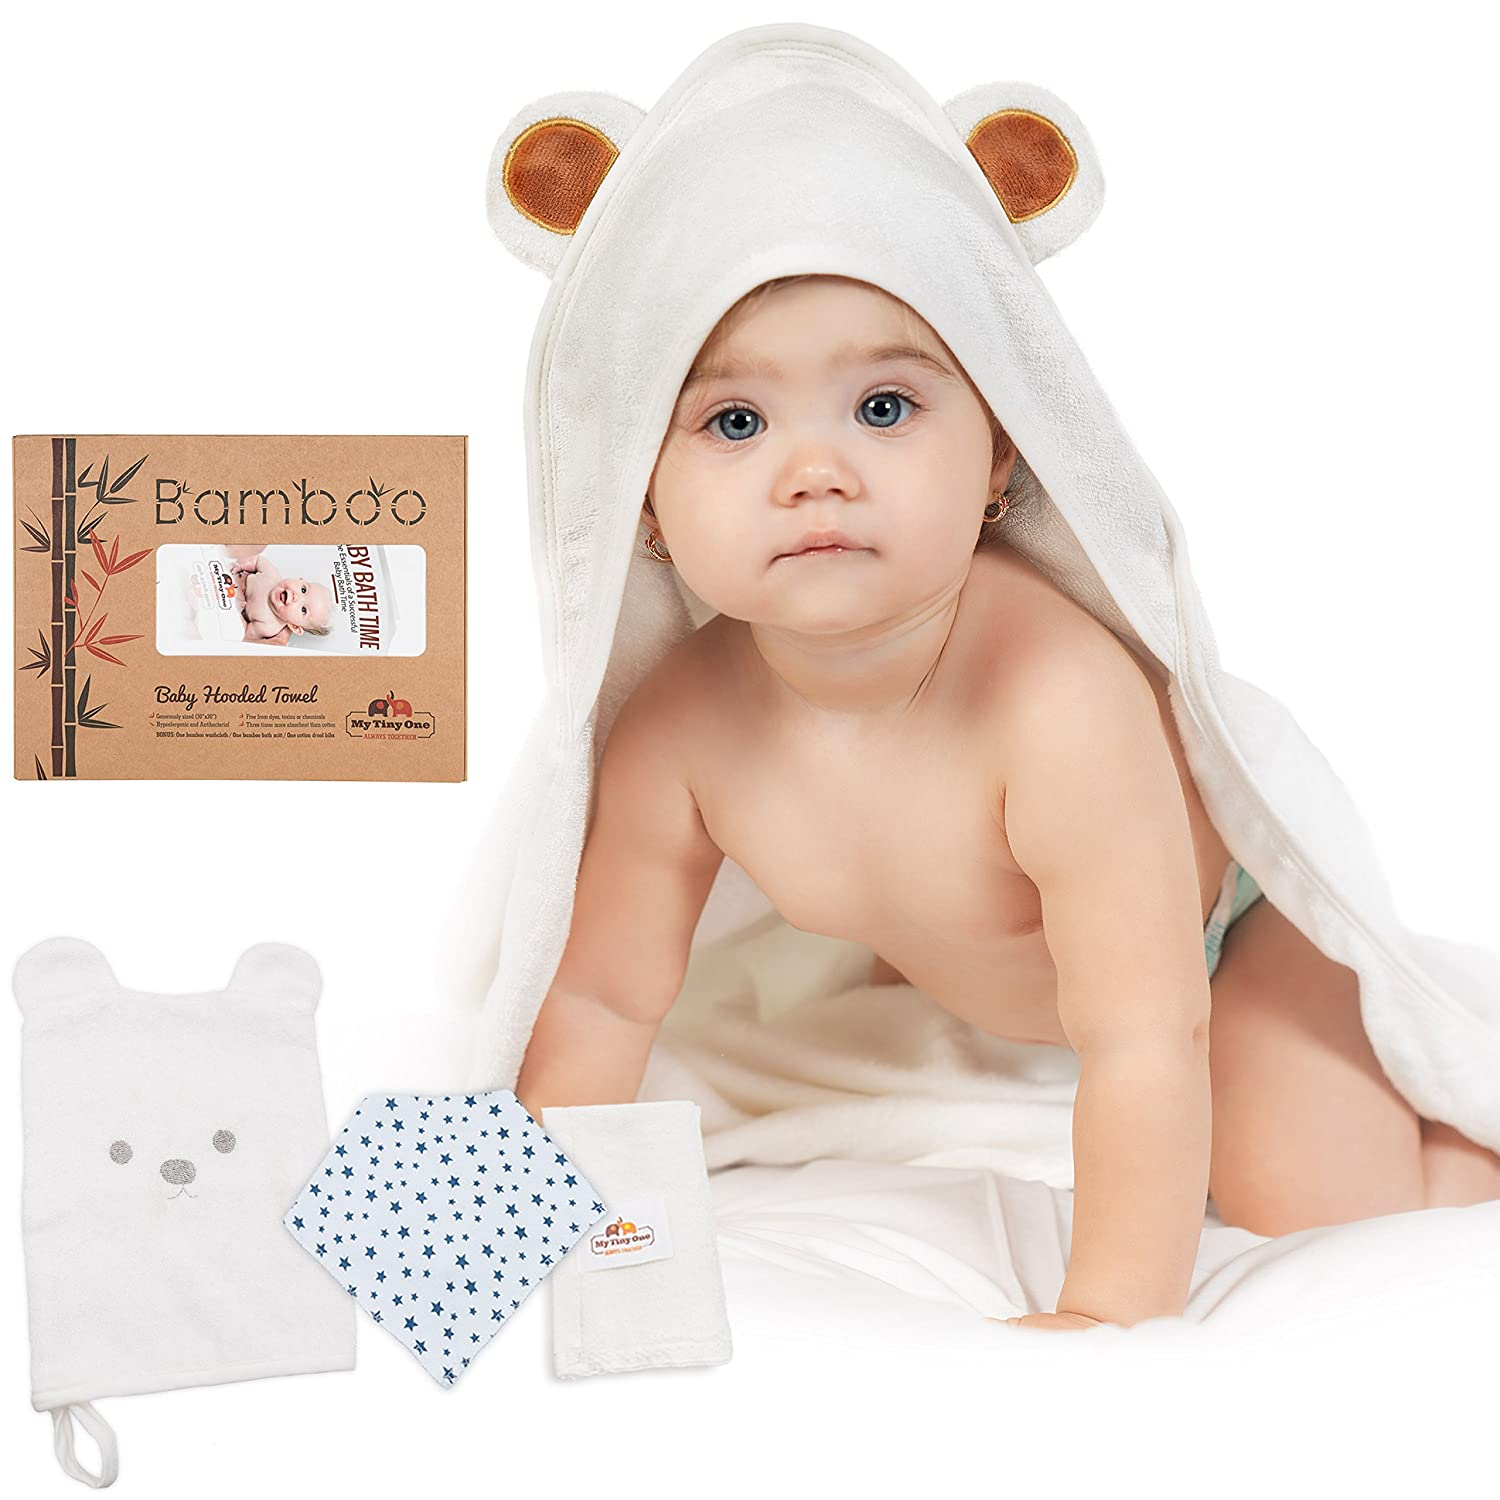 Large Hooded Baby Towel 100% Organic Bamboo | Softest Bath Towel + Washcloth Set for Girls & Boys | Perfect Size for Infants & Toddlers | BONUS 1 Bandana Drool + 1 Bamboo Bath Mitt